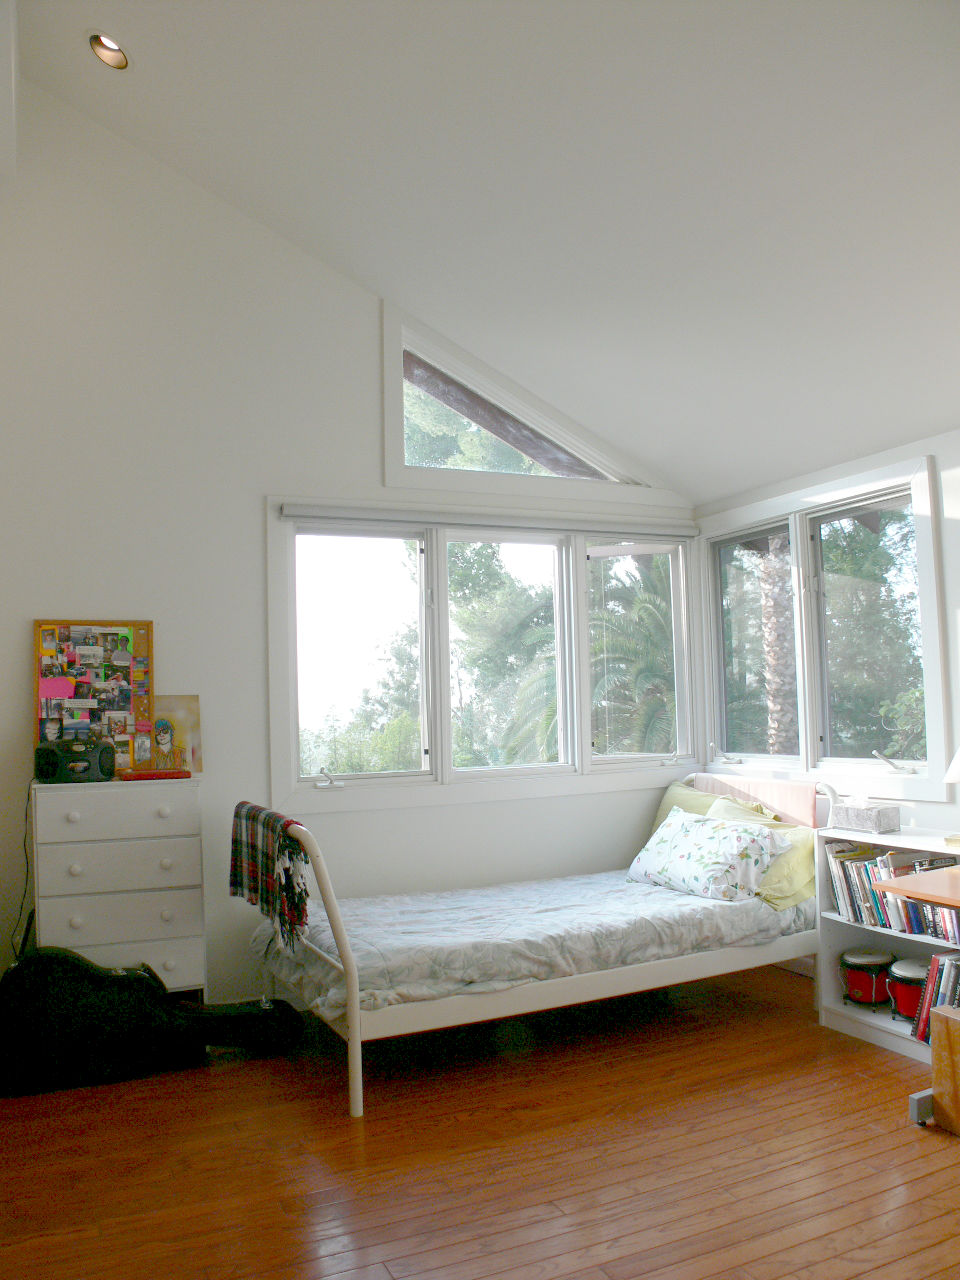 Third upstairs bedroom with awesome views.